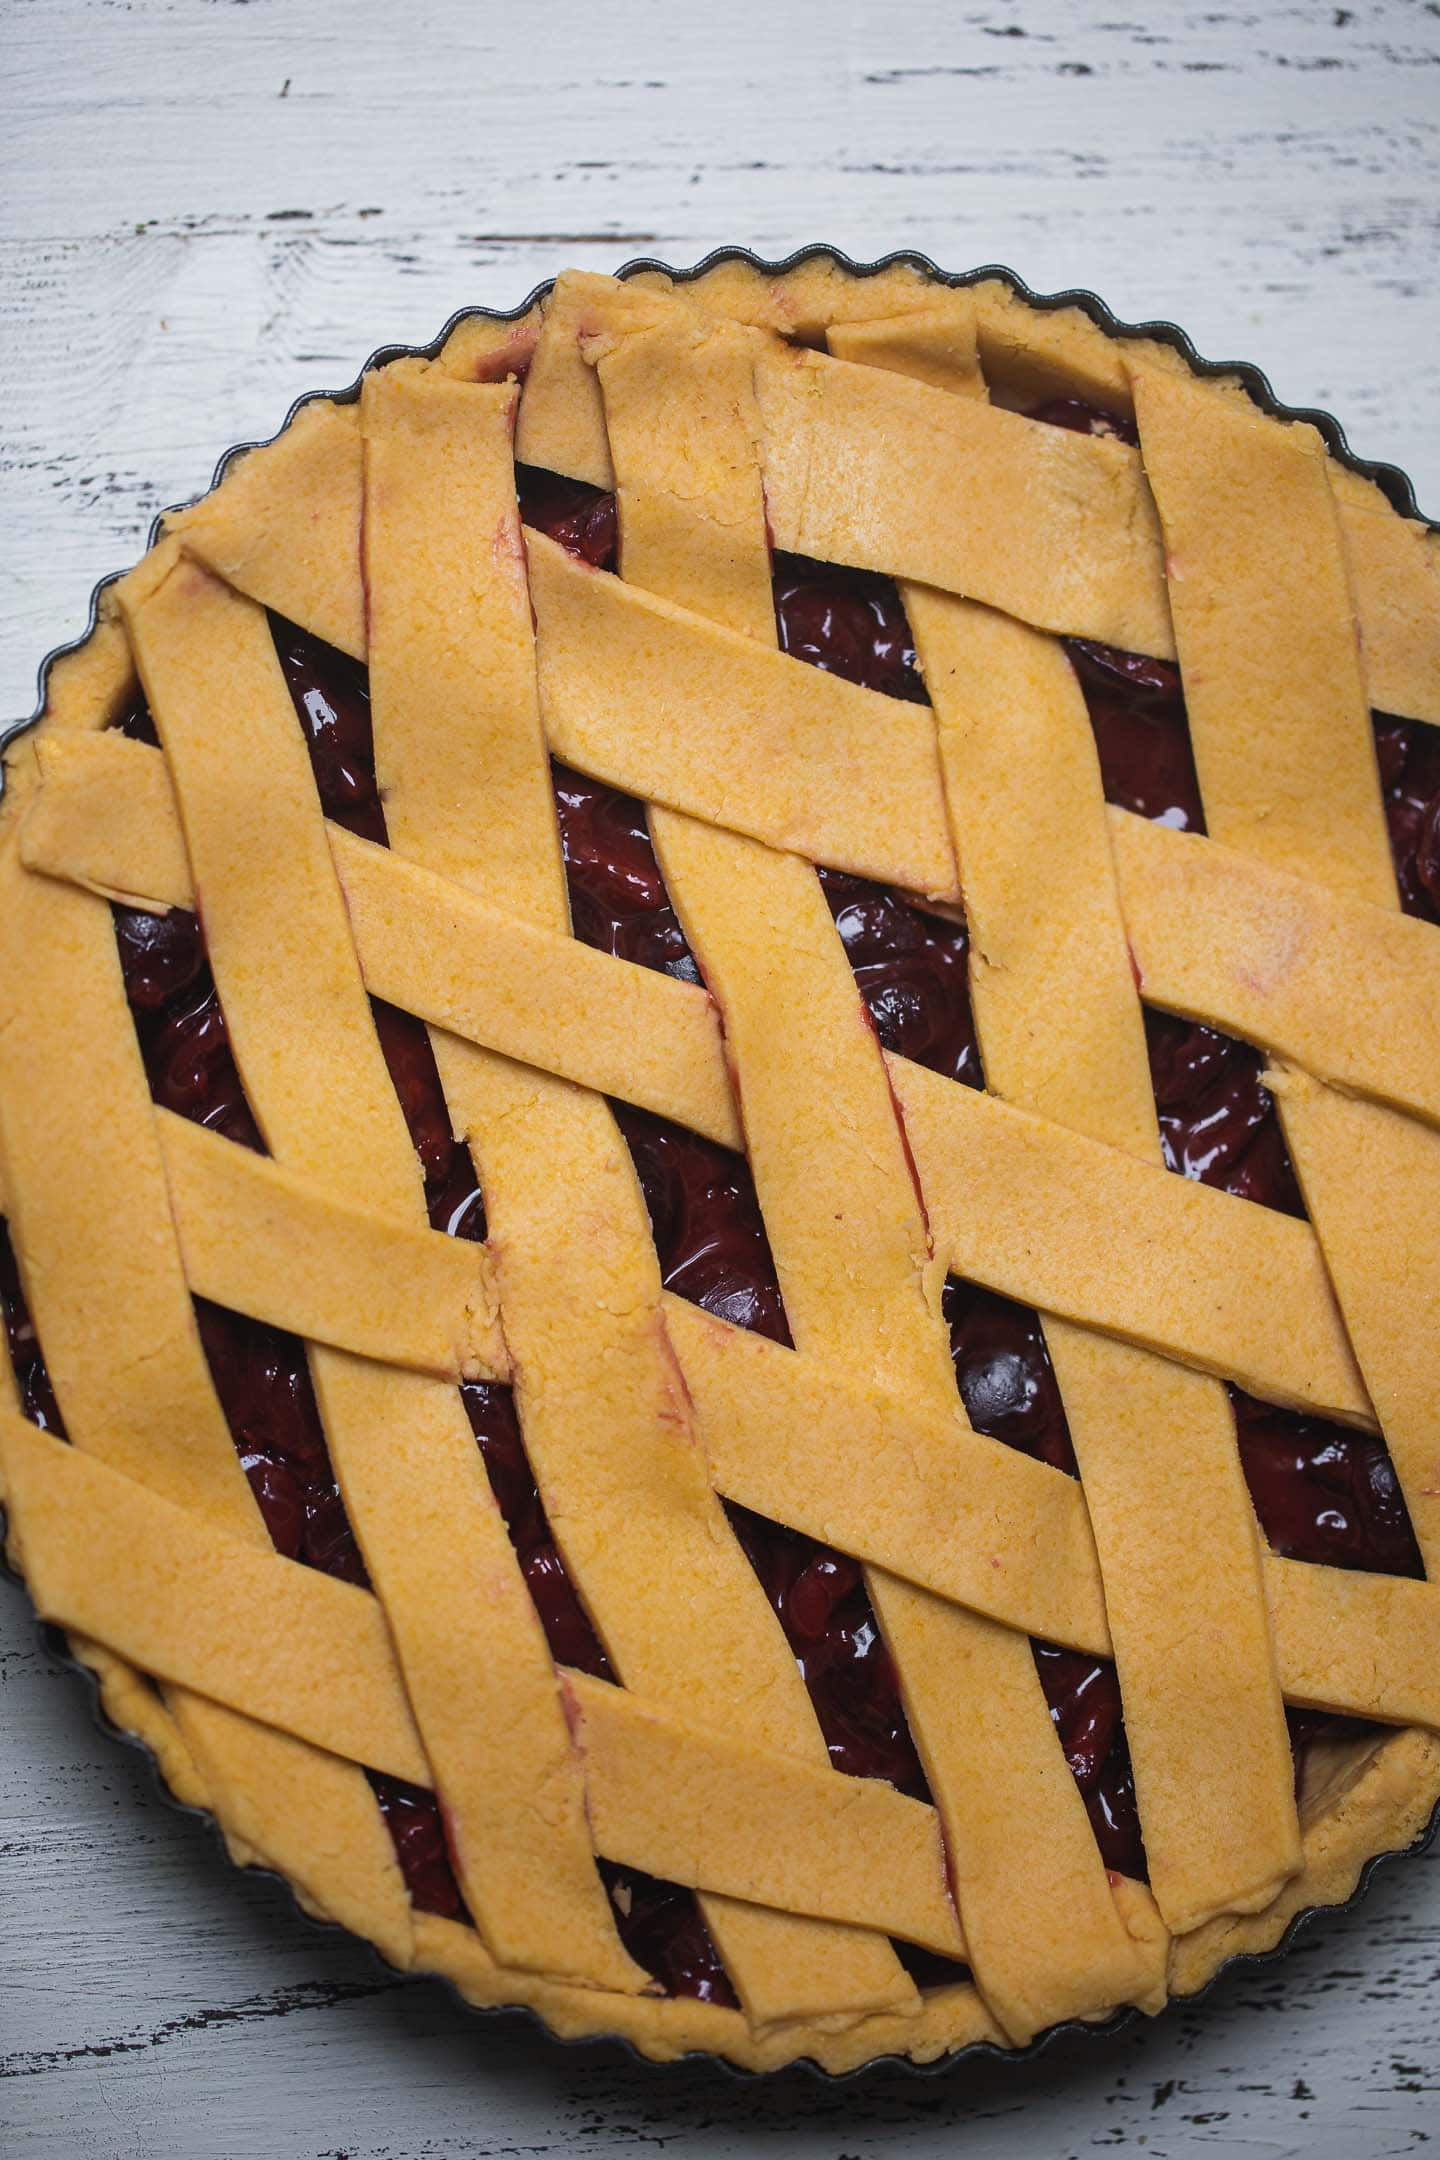 Vegan cherry pie before baking